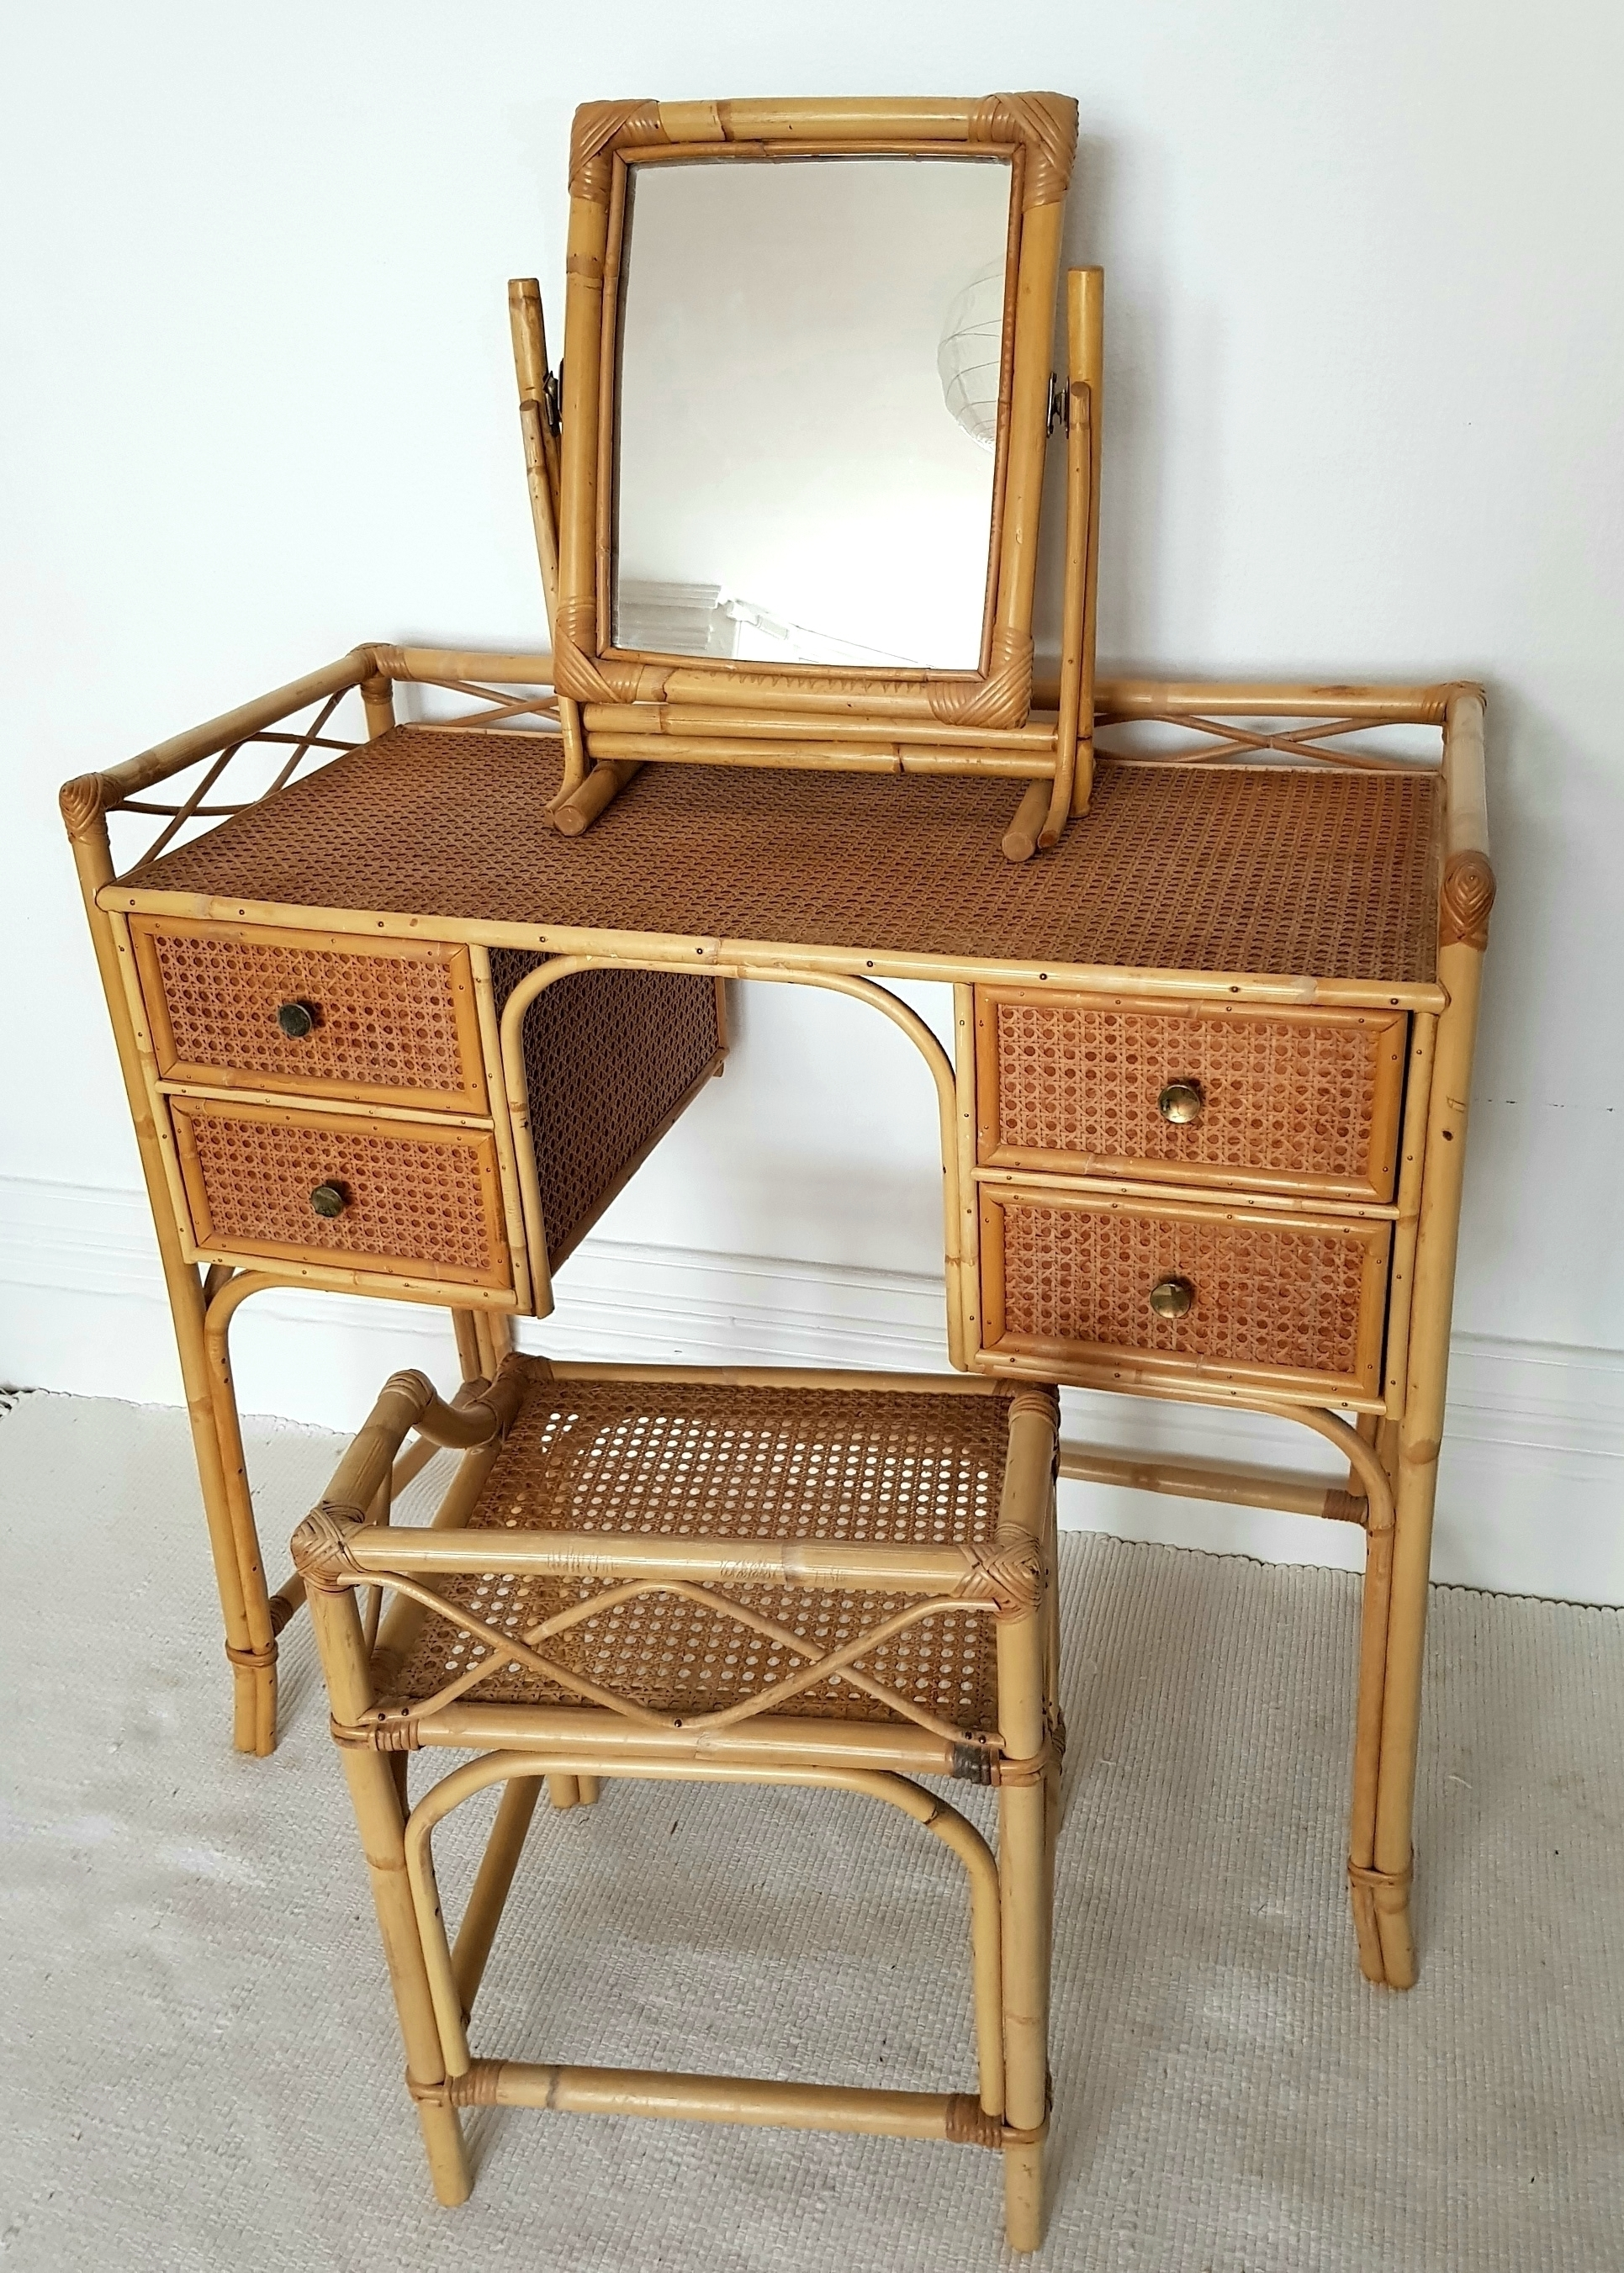 Midcentury Bamboo Rattan Dressing Table Set Cane Desk With Stool And Mirror Bohemian Vinterior